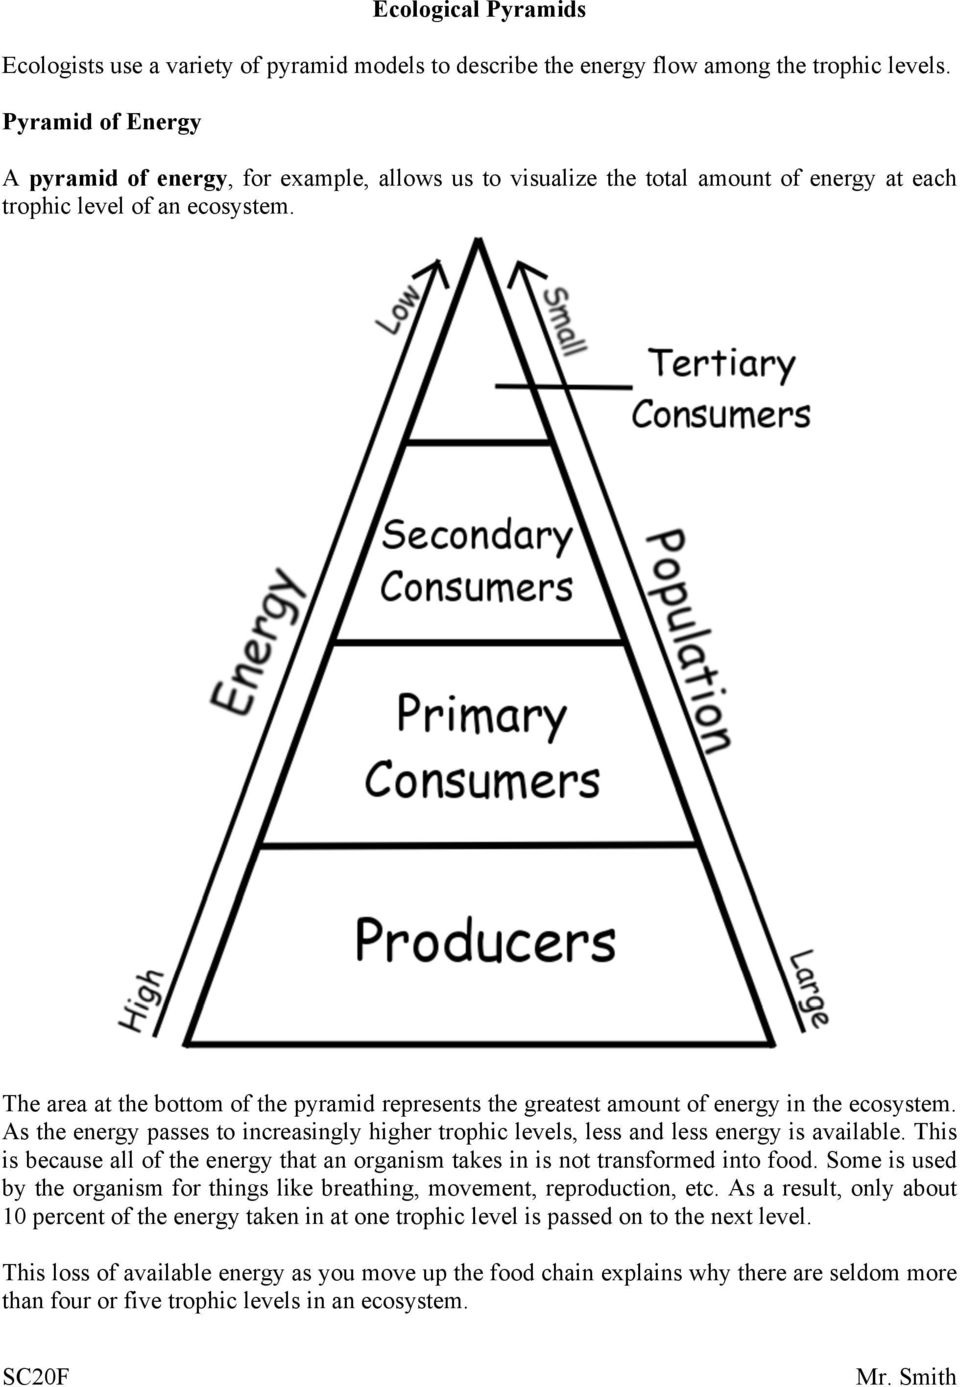 The area at the bottom of the pyramid represents the greatest amount of energy in the ecosystem. As the energy passes to increasingly higher trophic levels, less and less energy is available.